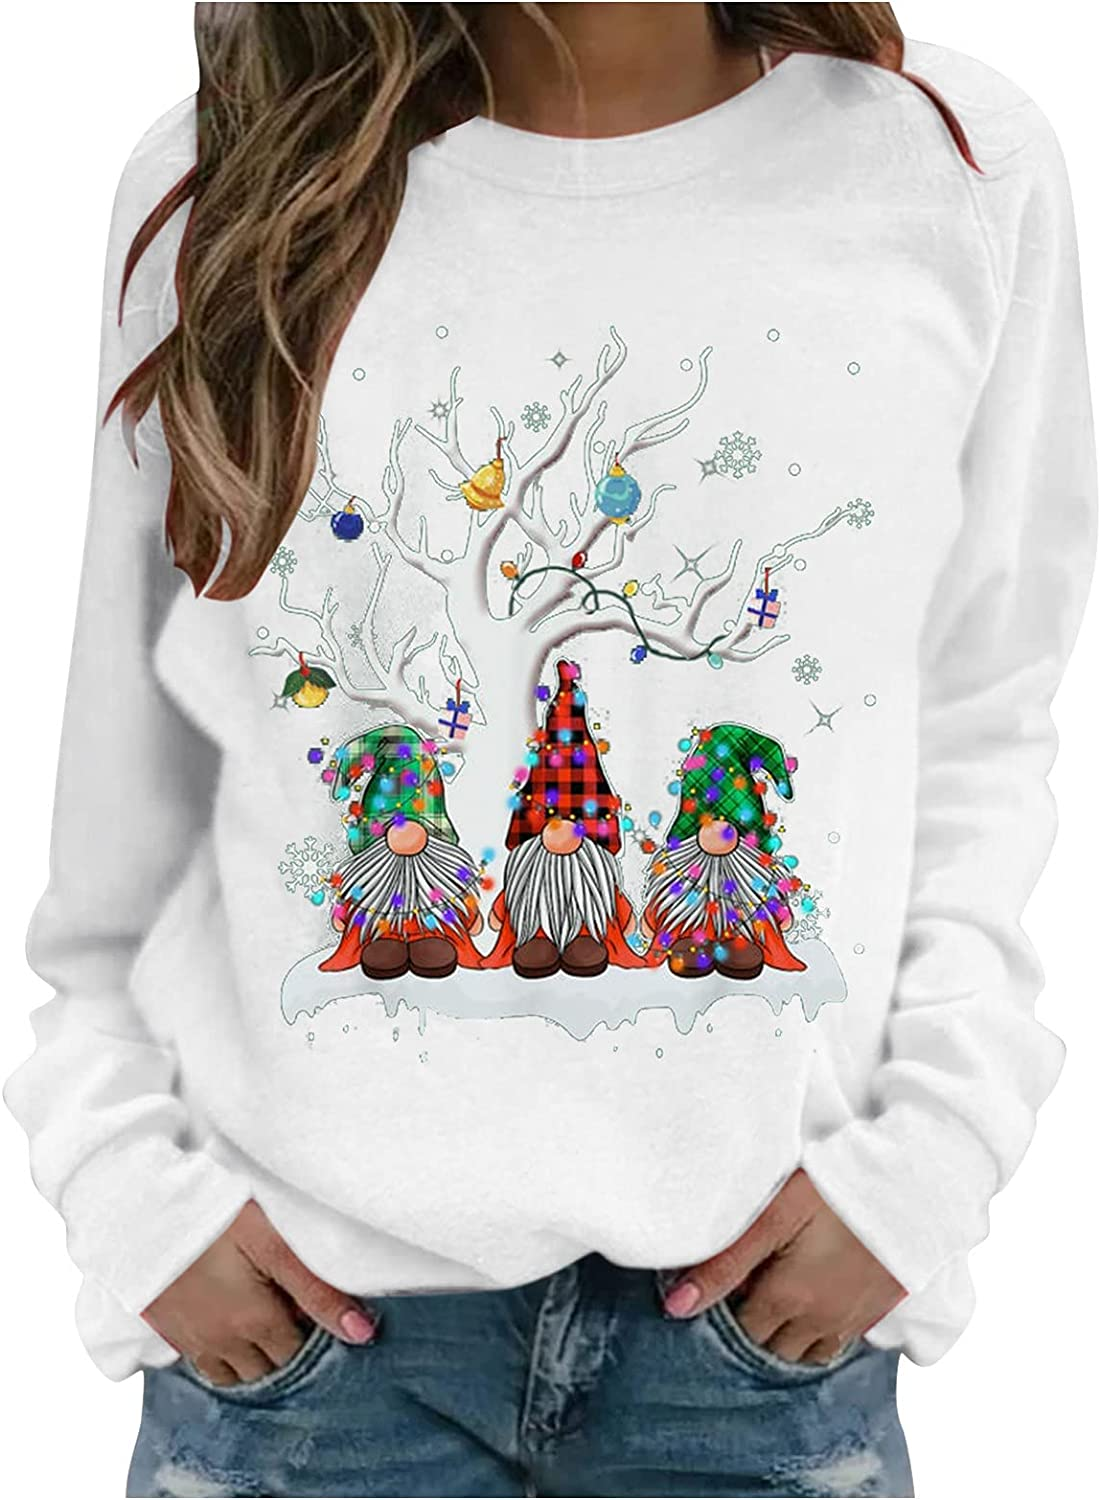 Womens Christmas Sweatshirt Funny Christmas Tree Gnome Printed Long Sleeve Crewneck Casual Pullover Fall Clothes for Women